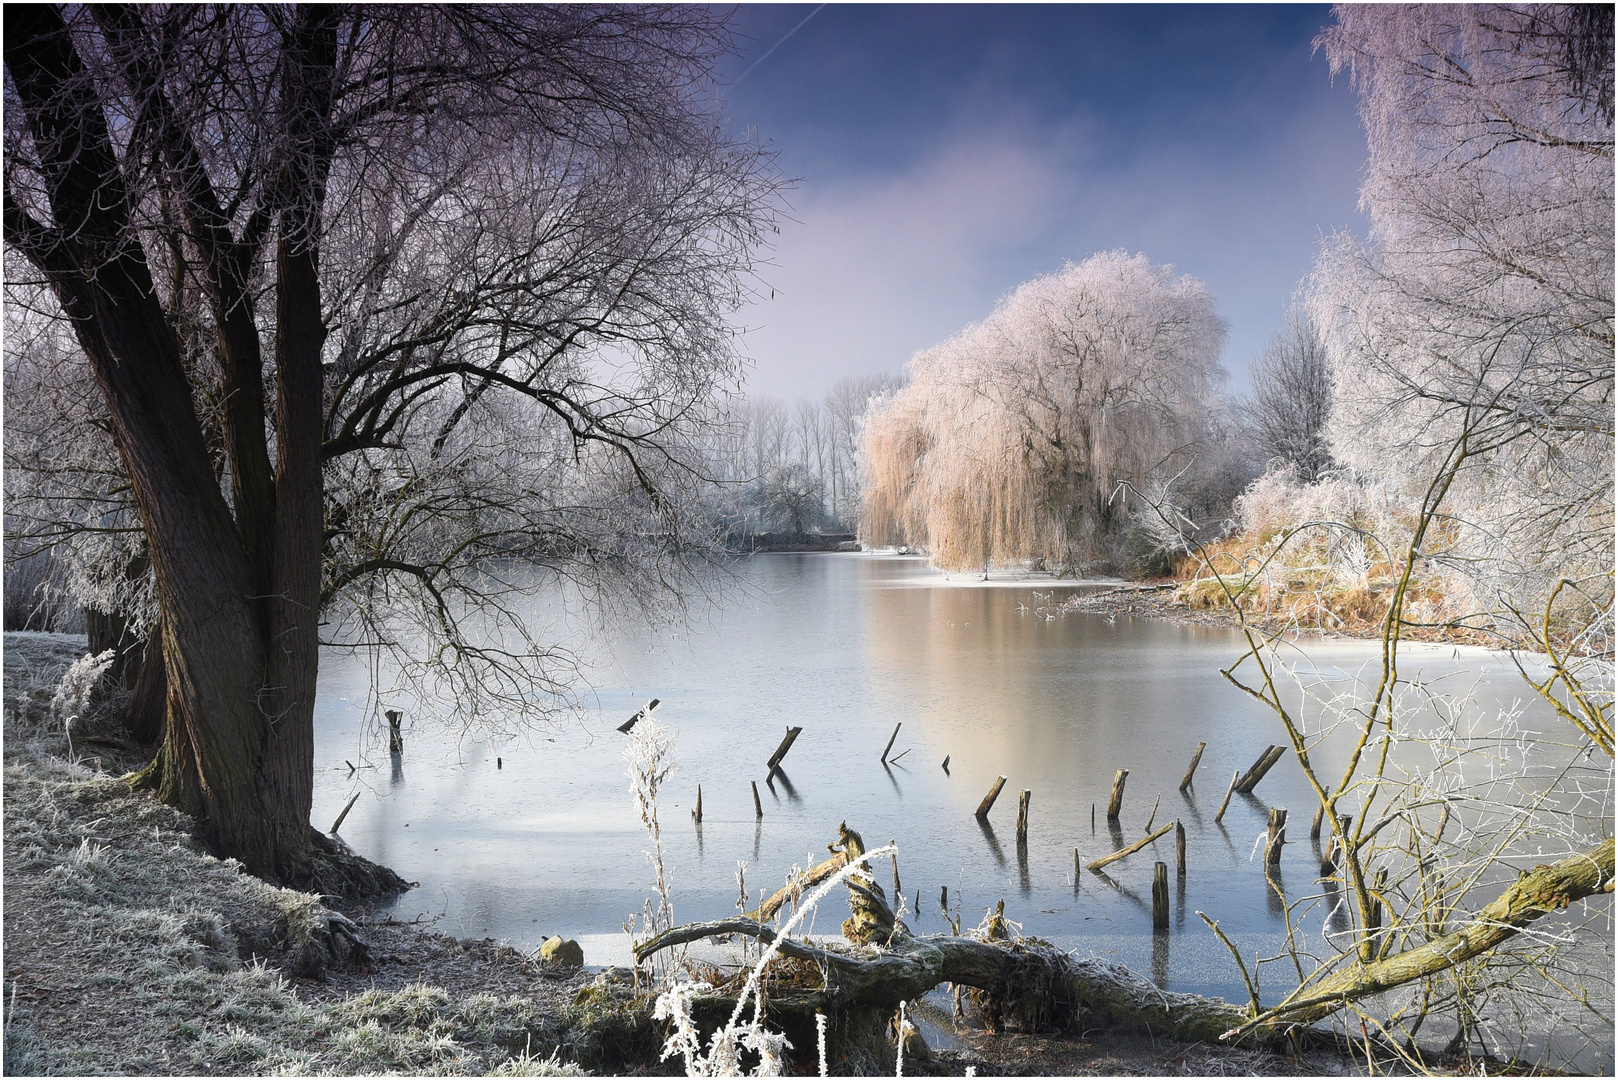 Winter Am Teich Foto Bild Landschaft Winter